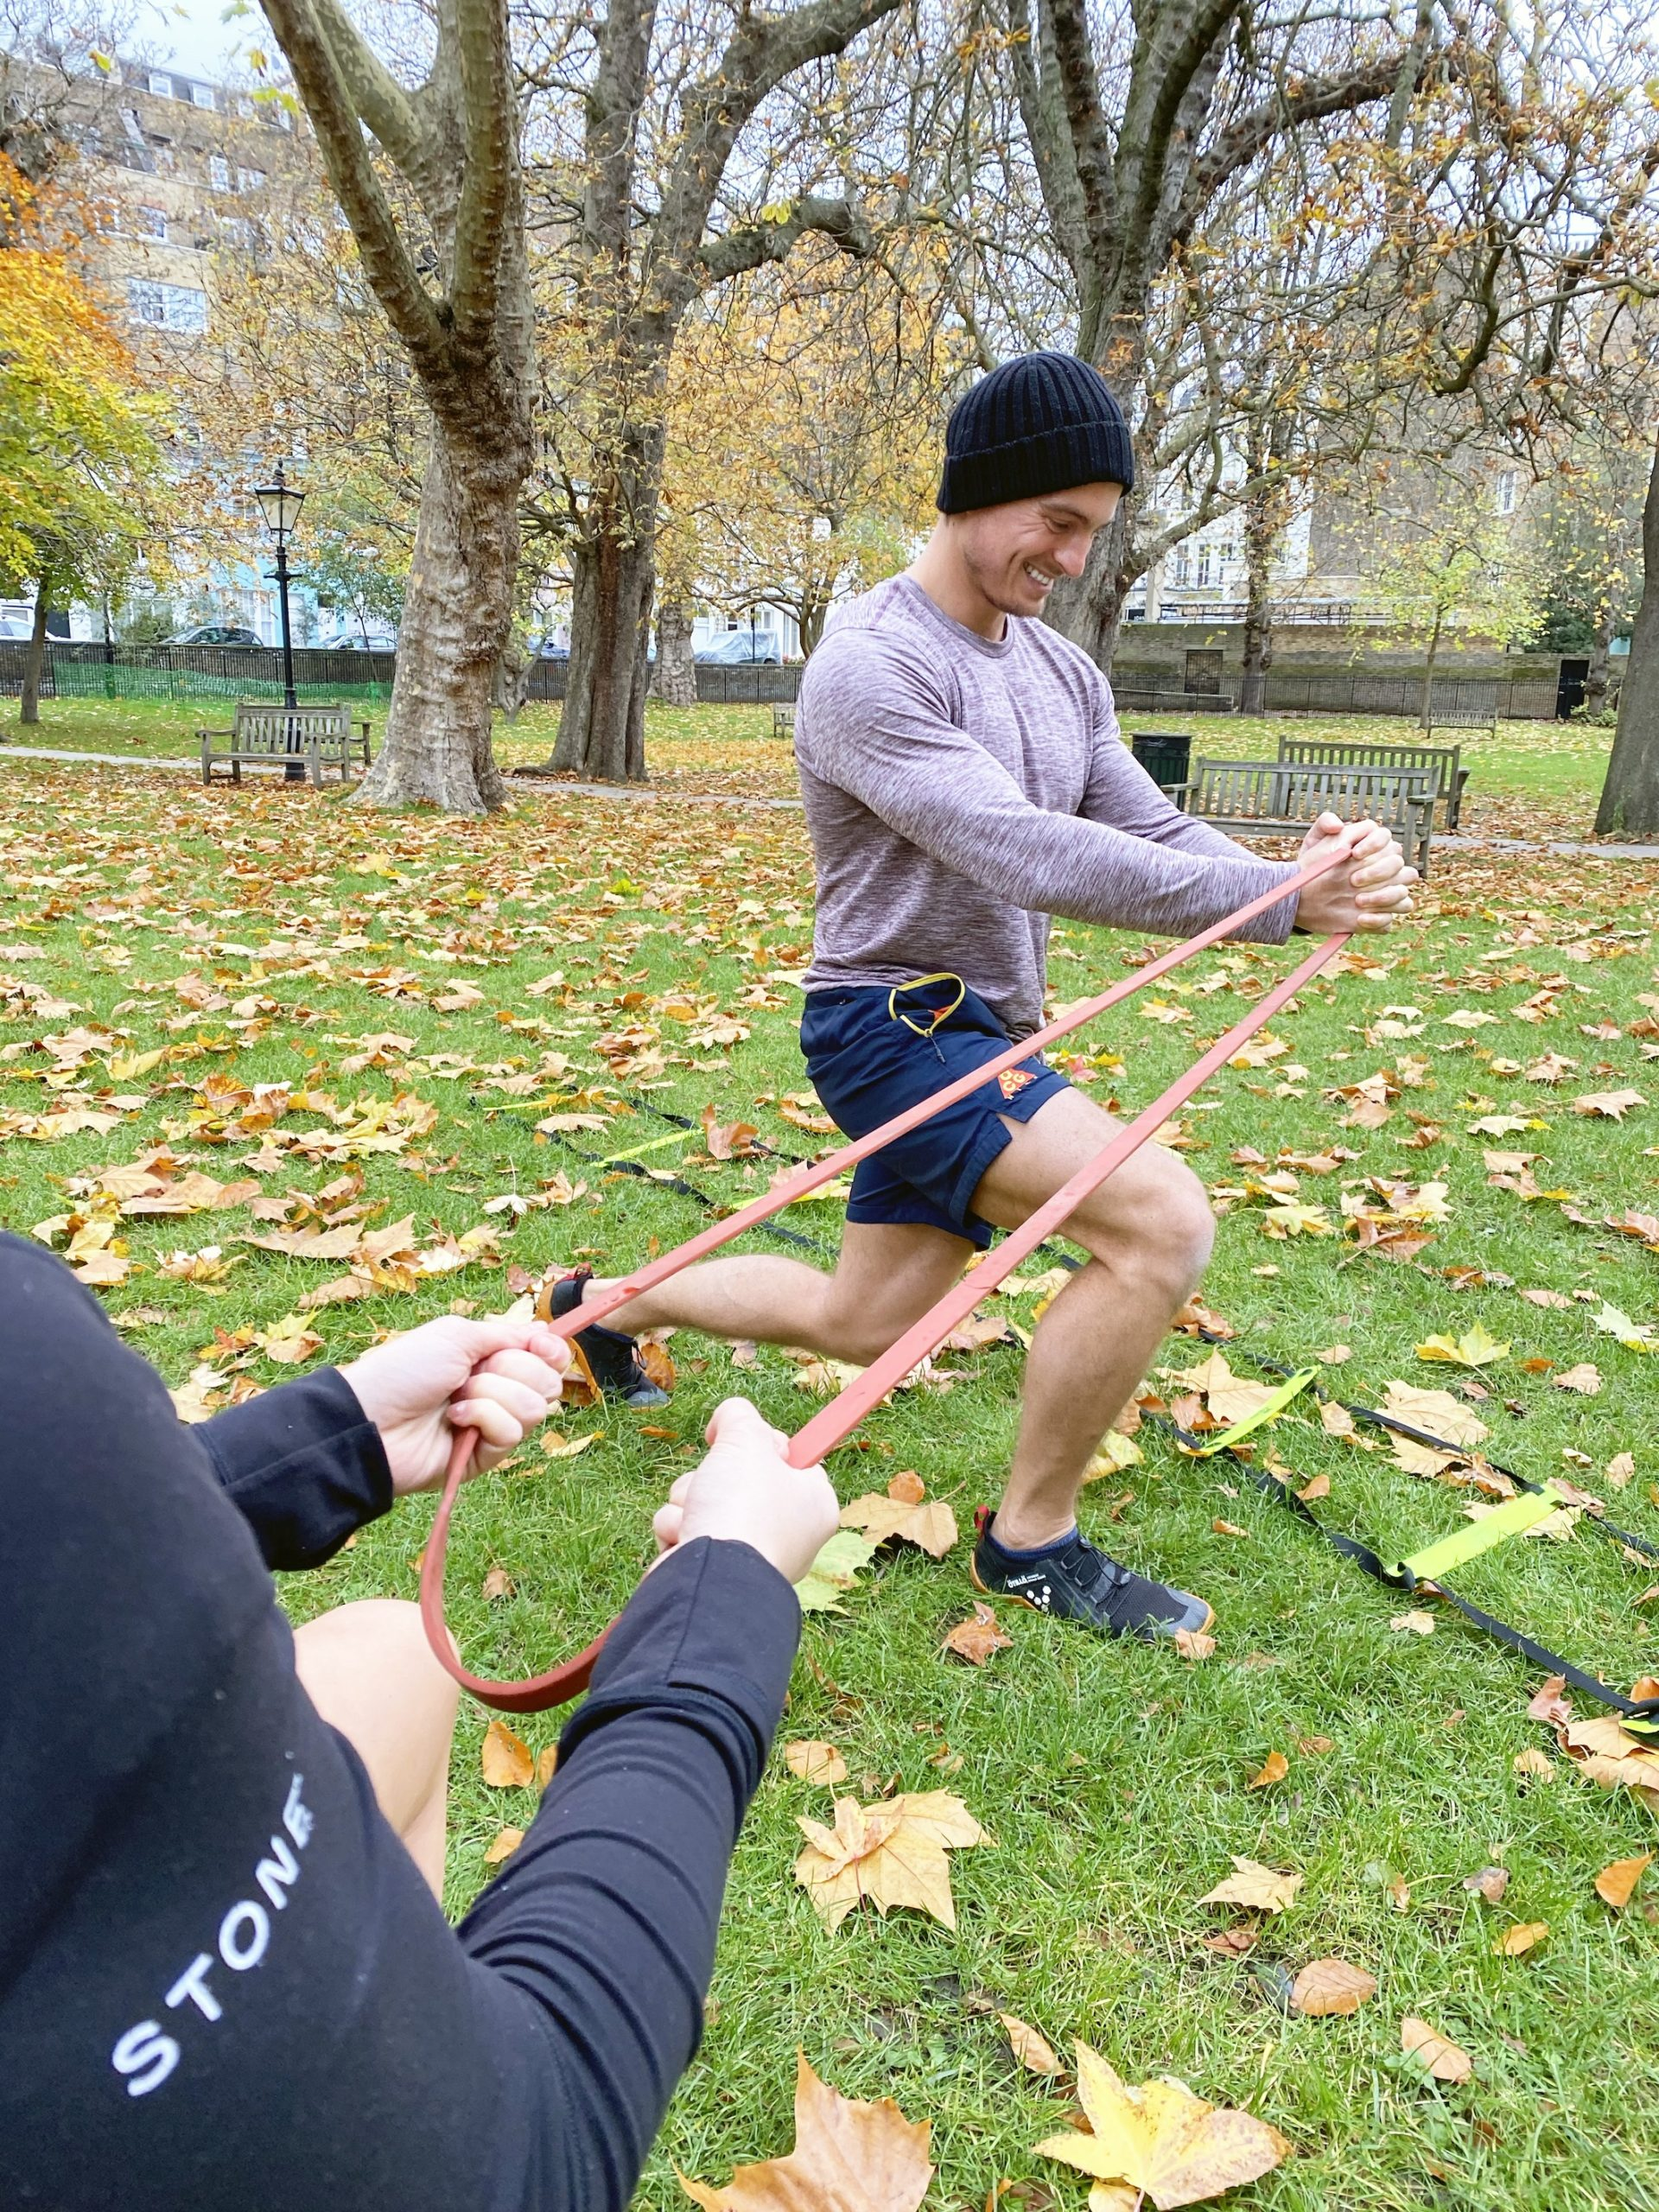 Resistance band training in the park